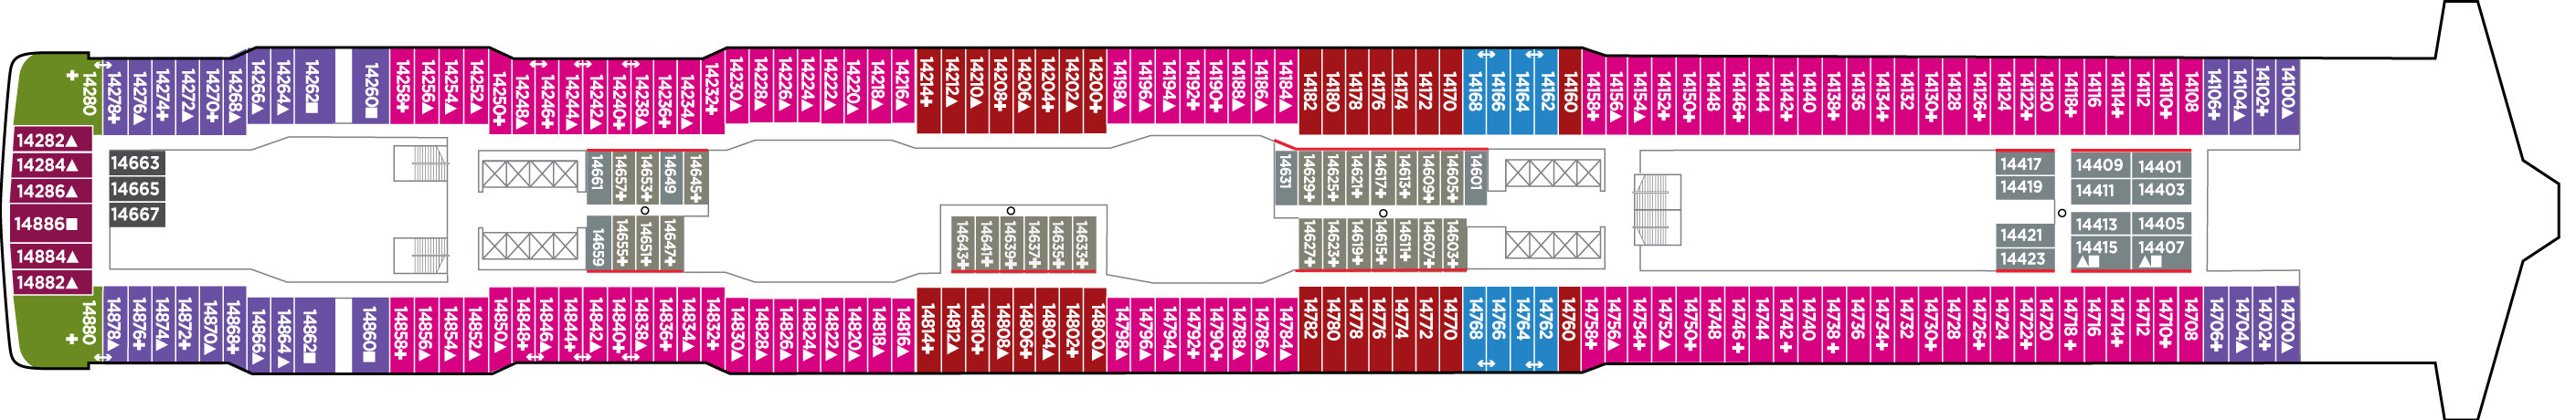 Norwegian Cruise Lines Norwegian Bliss Deck Plans Deck 14.png